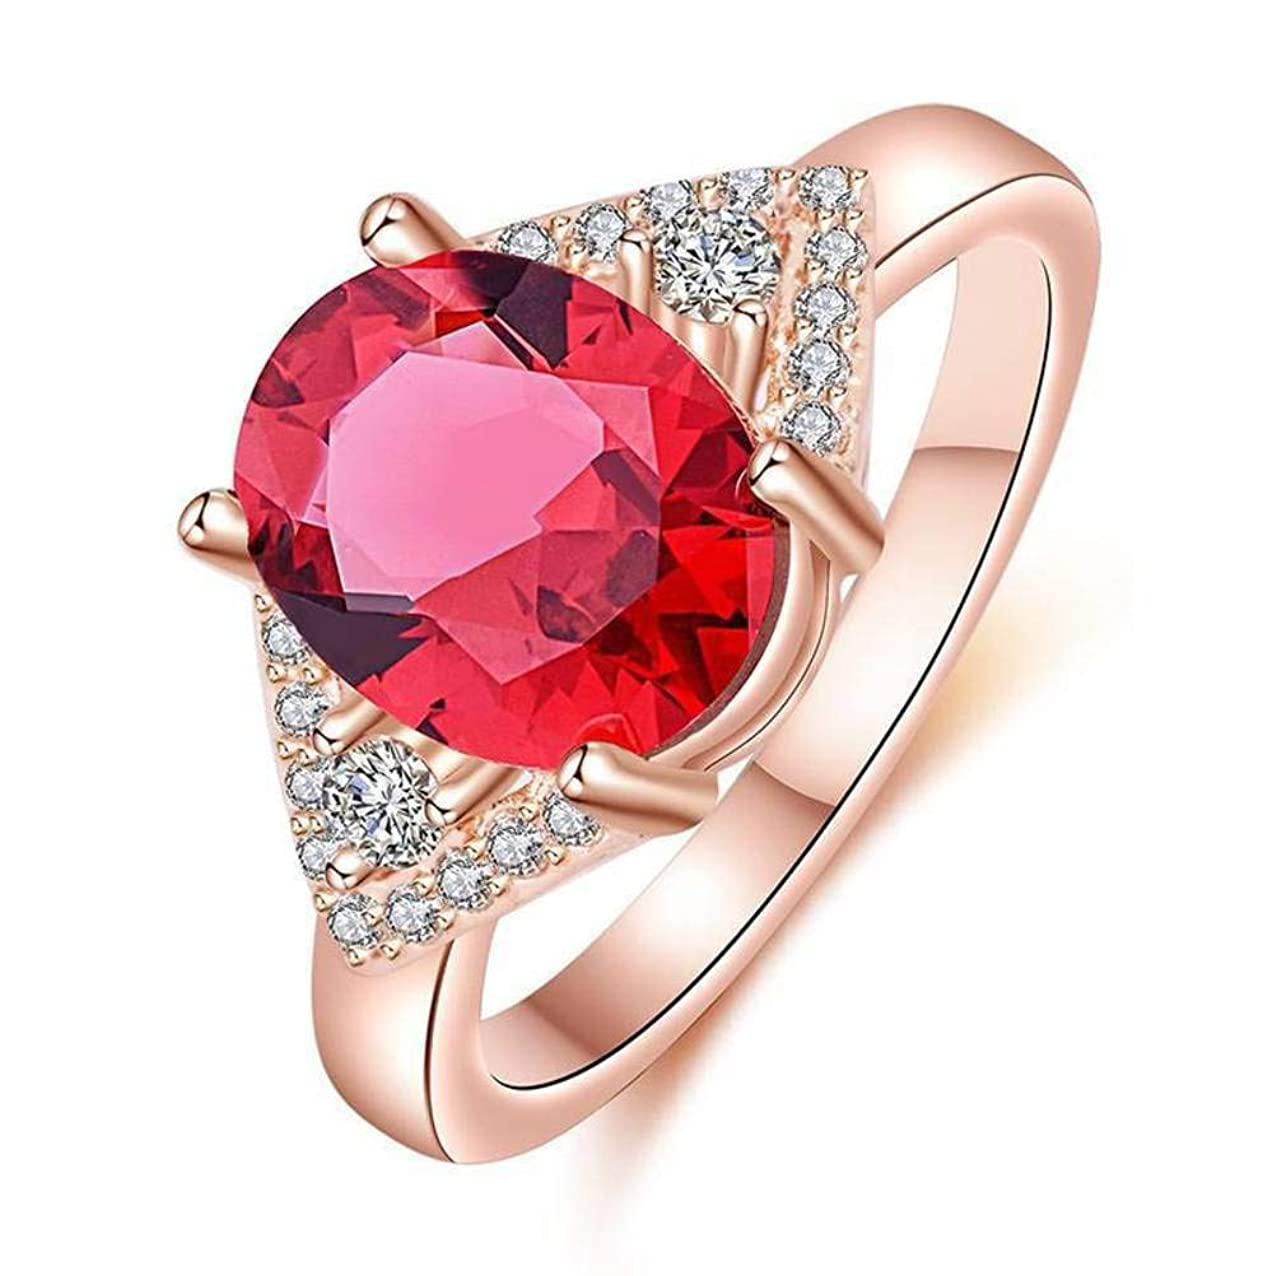 Chuan Han Inlaid Rose Red Zircon Crystal Triangle Rhinestone Ring Rose Rose 925 Simple Fashion Ring Jewelry, Female, Popular, Claw Set, Geometric, Attending Cocktail Ring, Diamond, Rose red & Rose